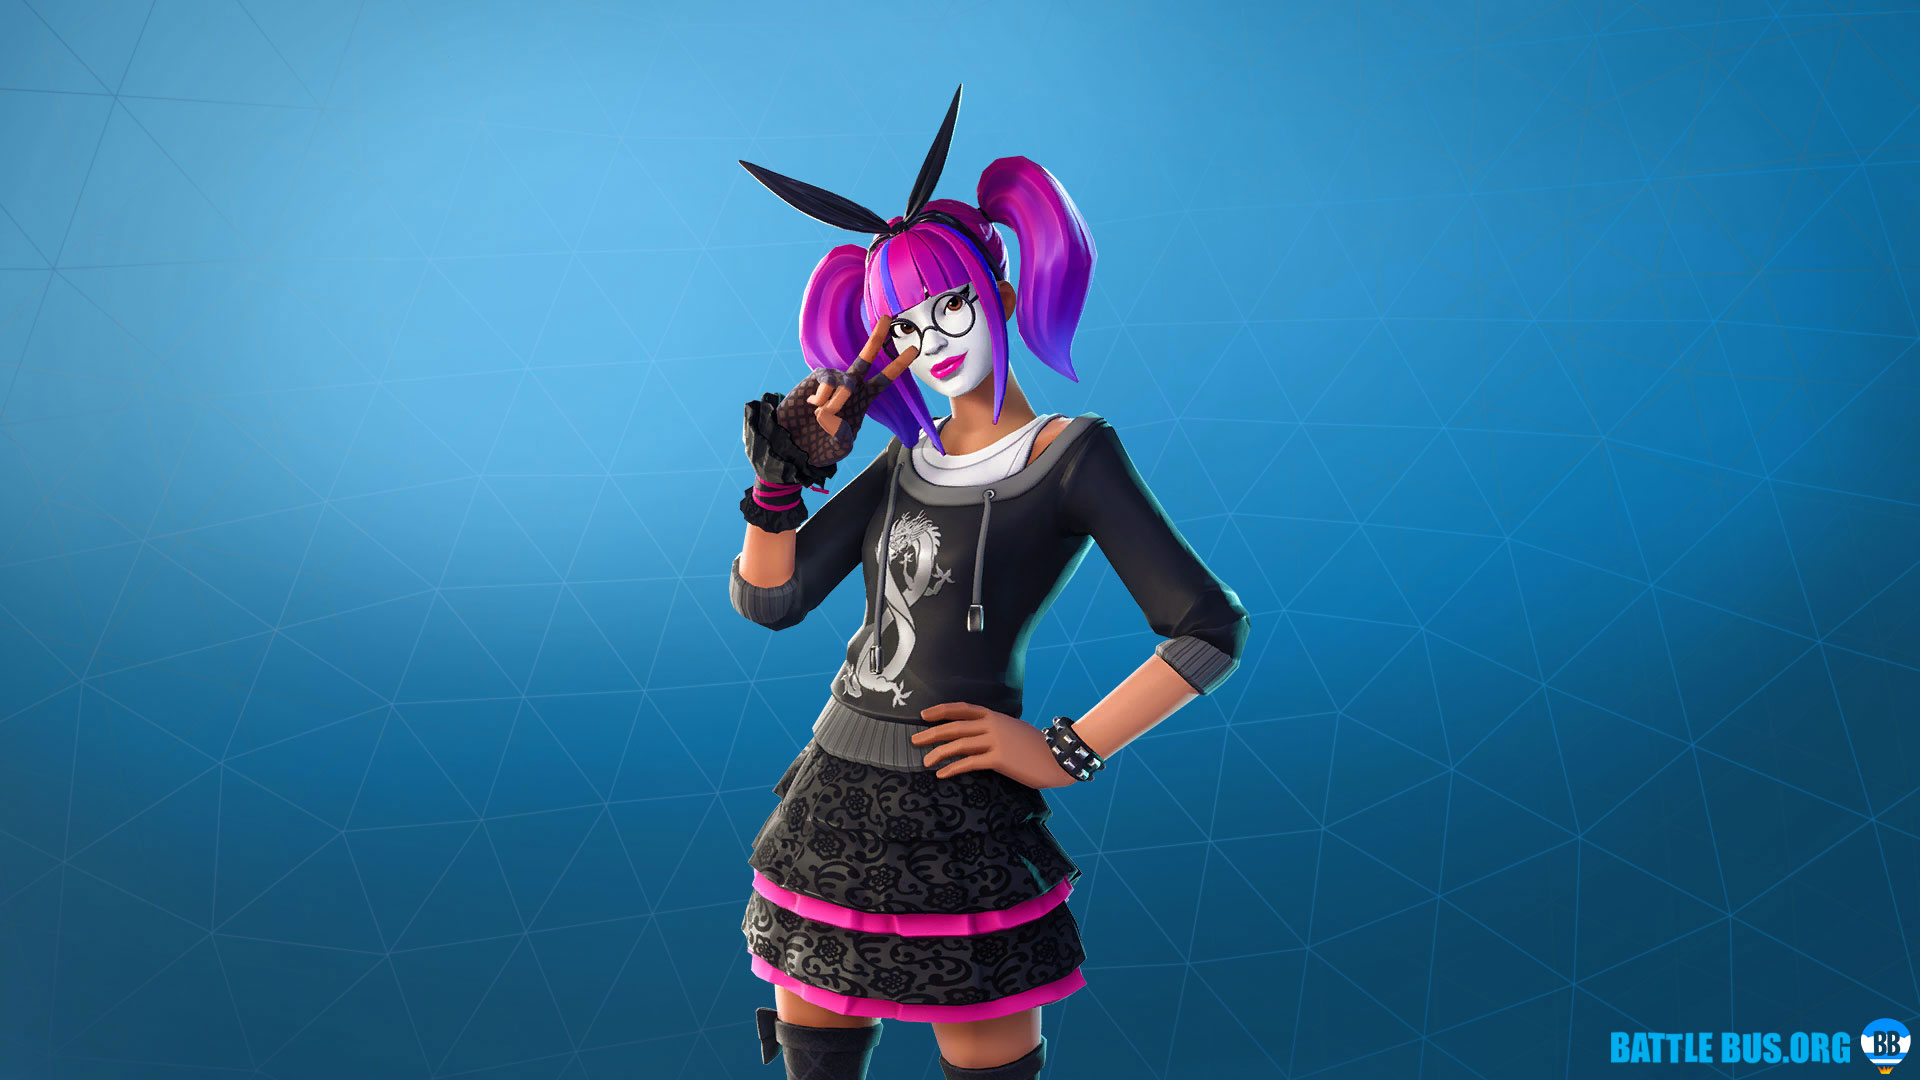 Lace   Ouroboros Set   Fortnite News Skins Settings Updates 1920x1080